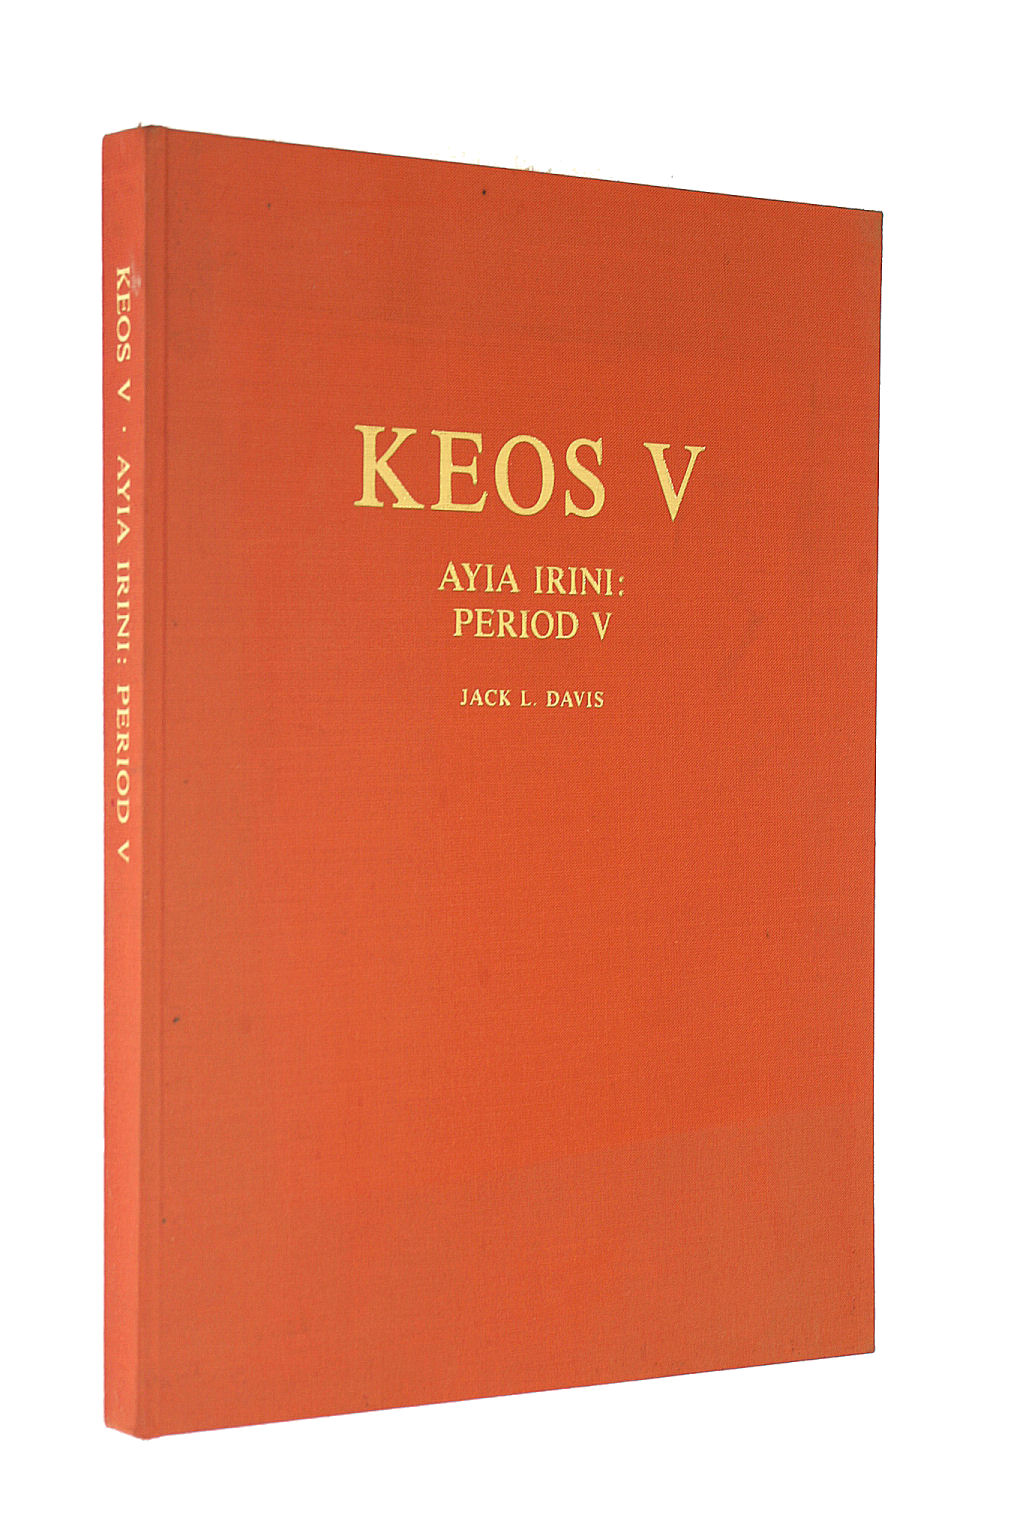 Image for Keos: Results of excavations conducted by the University of Cincinnati under the auspices of the American School of Classical Studies at Athens